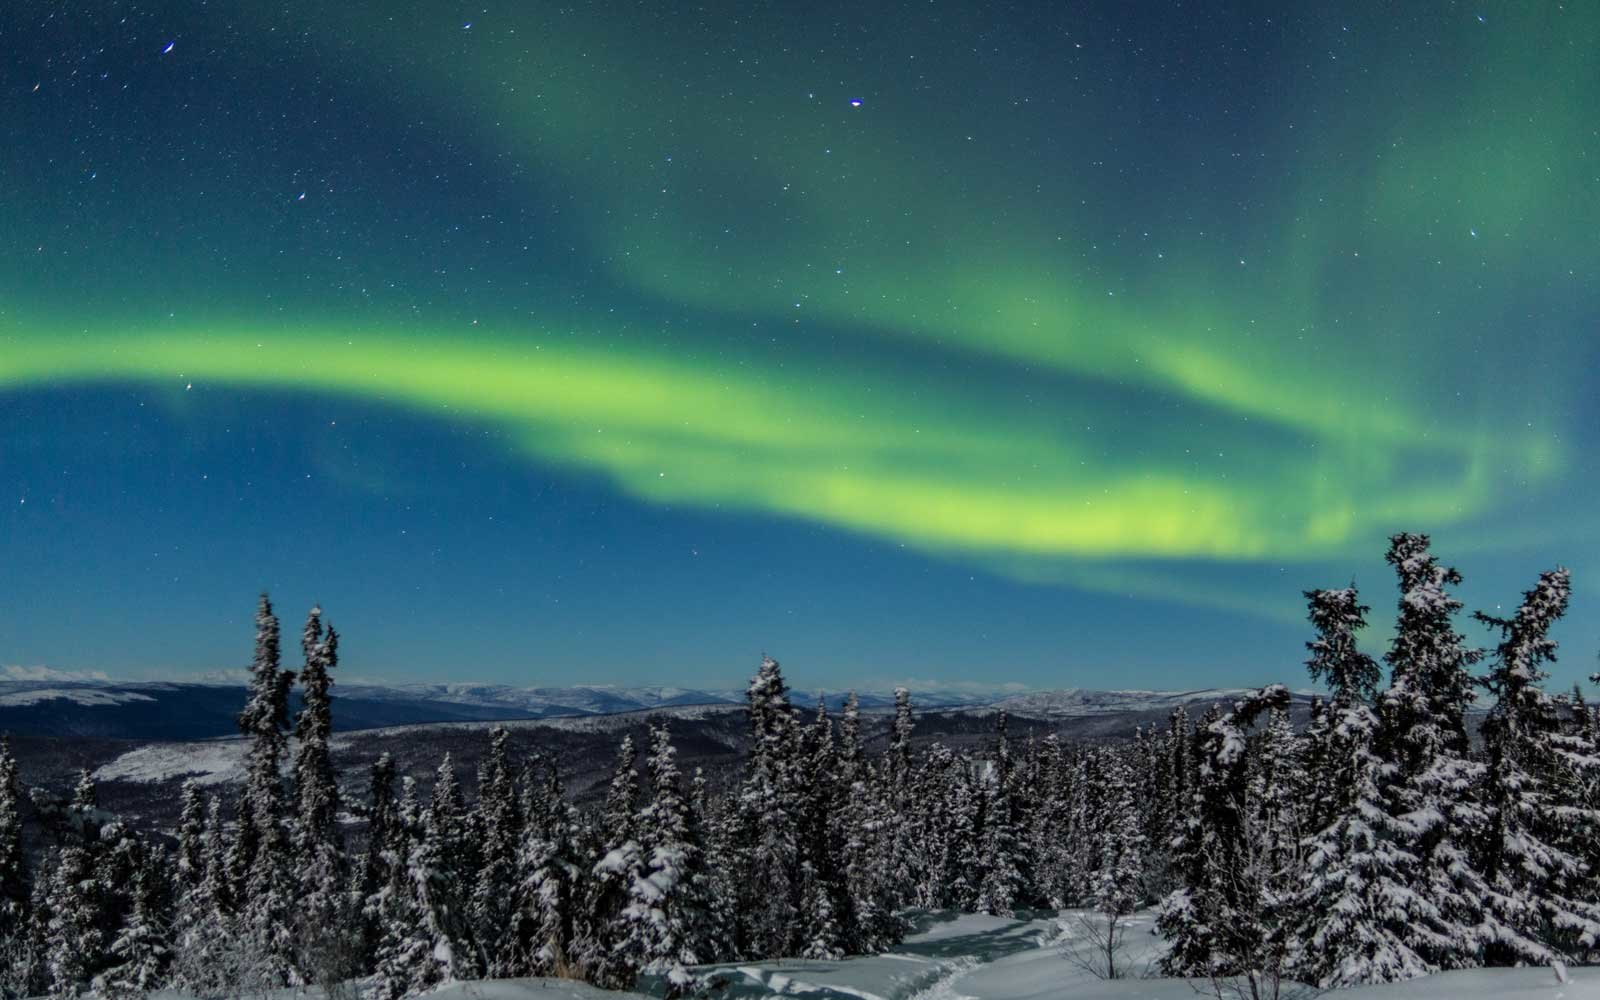 The Best Places To See The Northern Lights In January